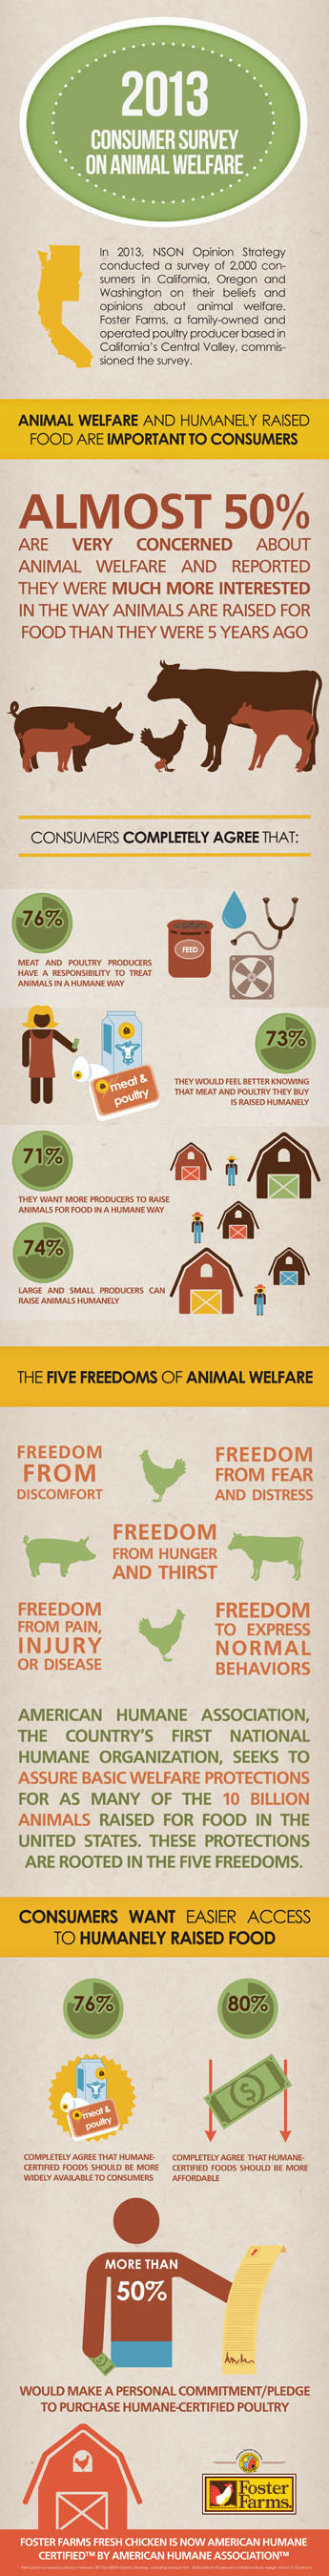 Infographic-Consumer Survey-Animal Welfare.  (PRNewsFoto/Foster Farms)